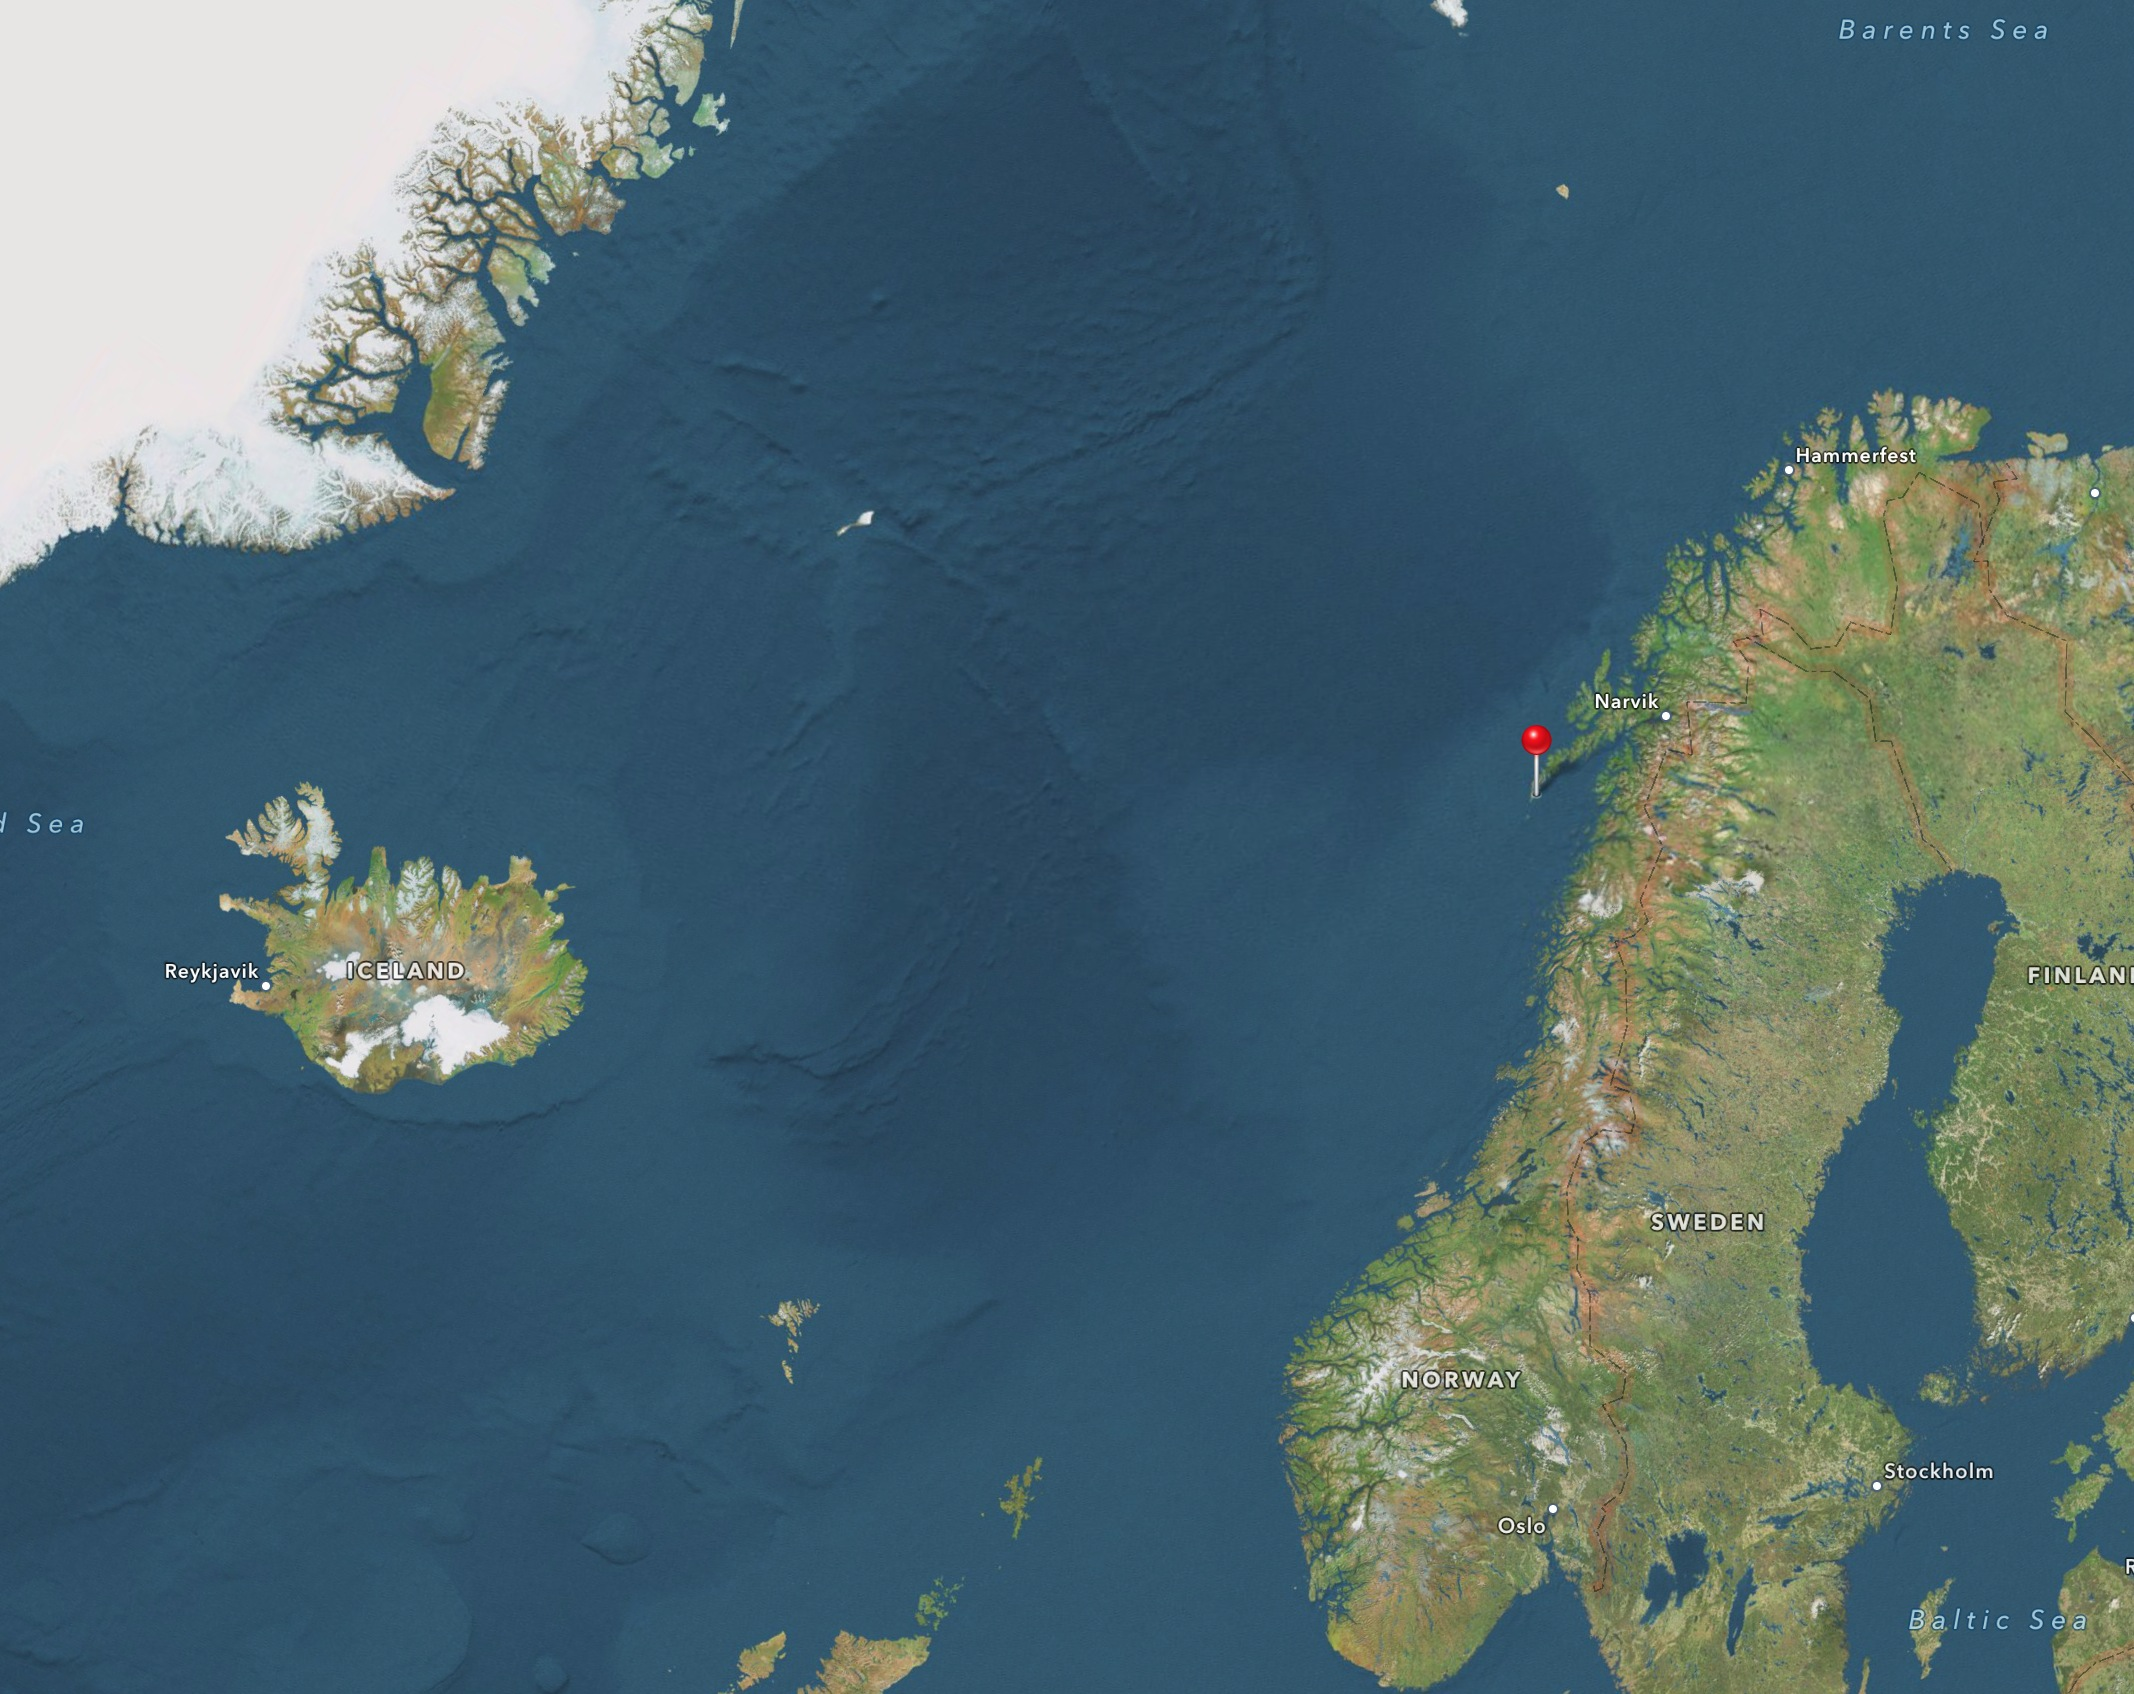 An Apple maps screenshot showing our final destination in Reine on the end of the Lofoten Island chain